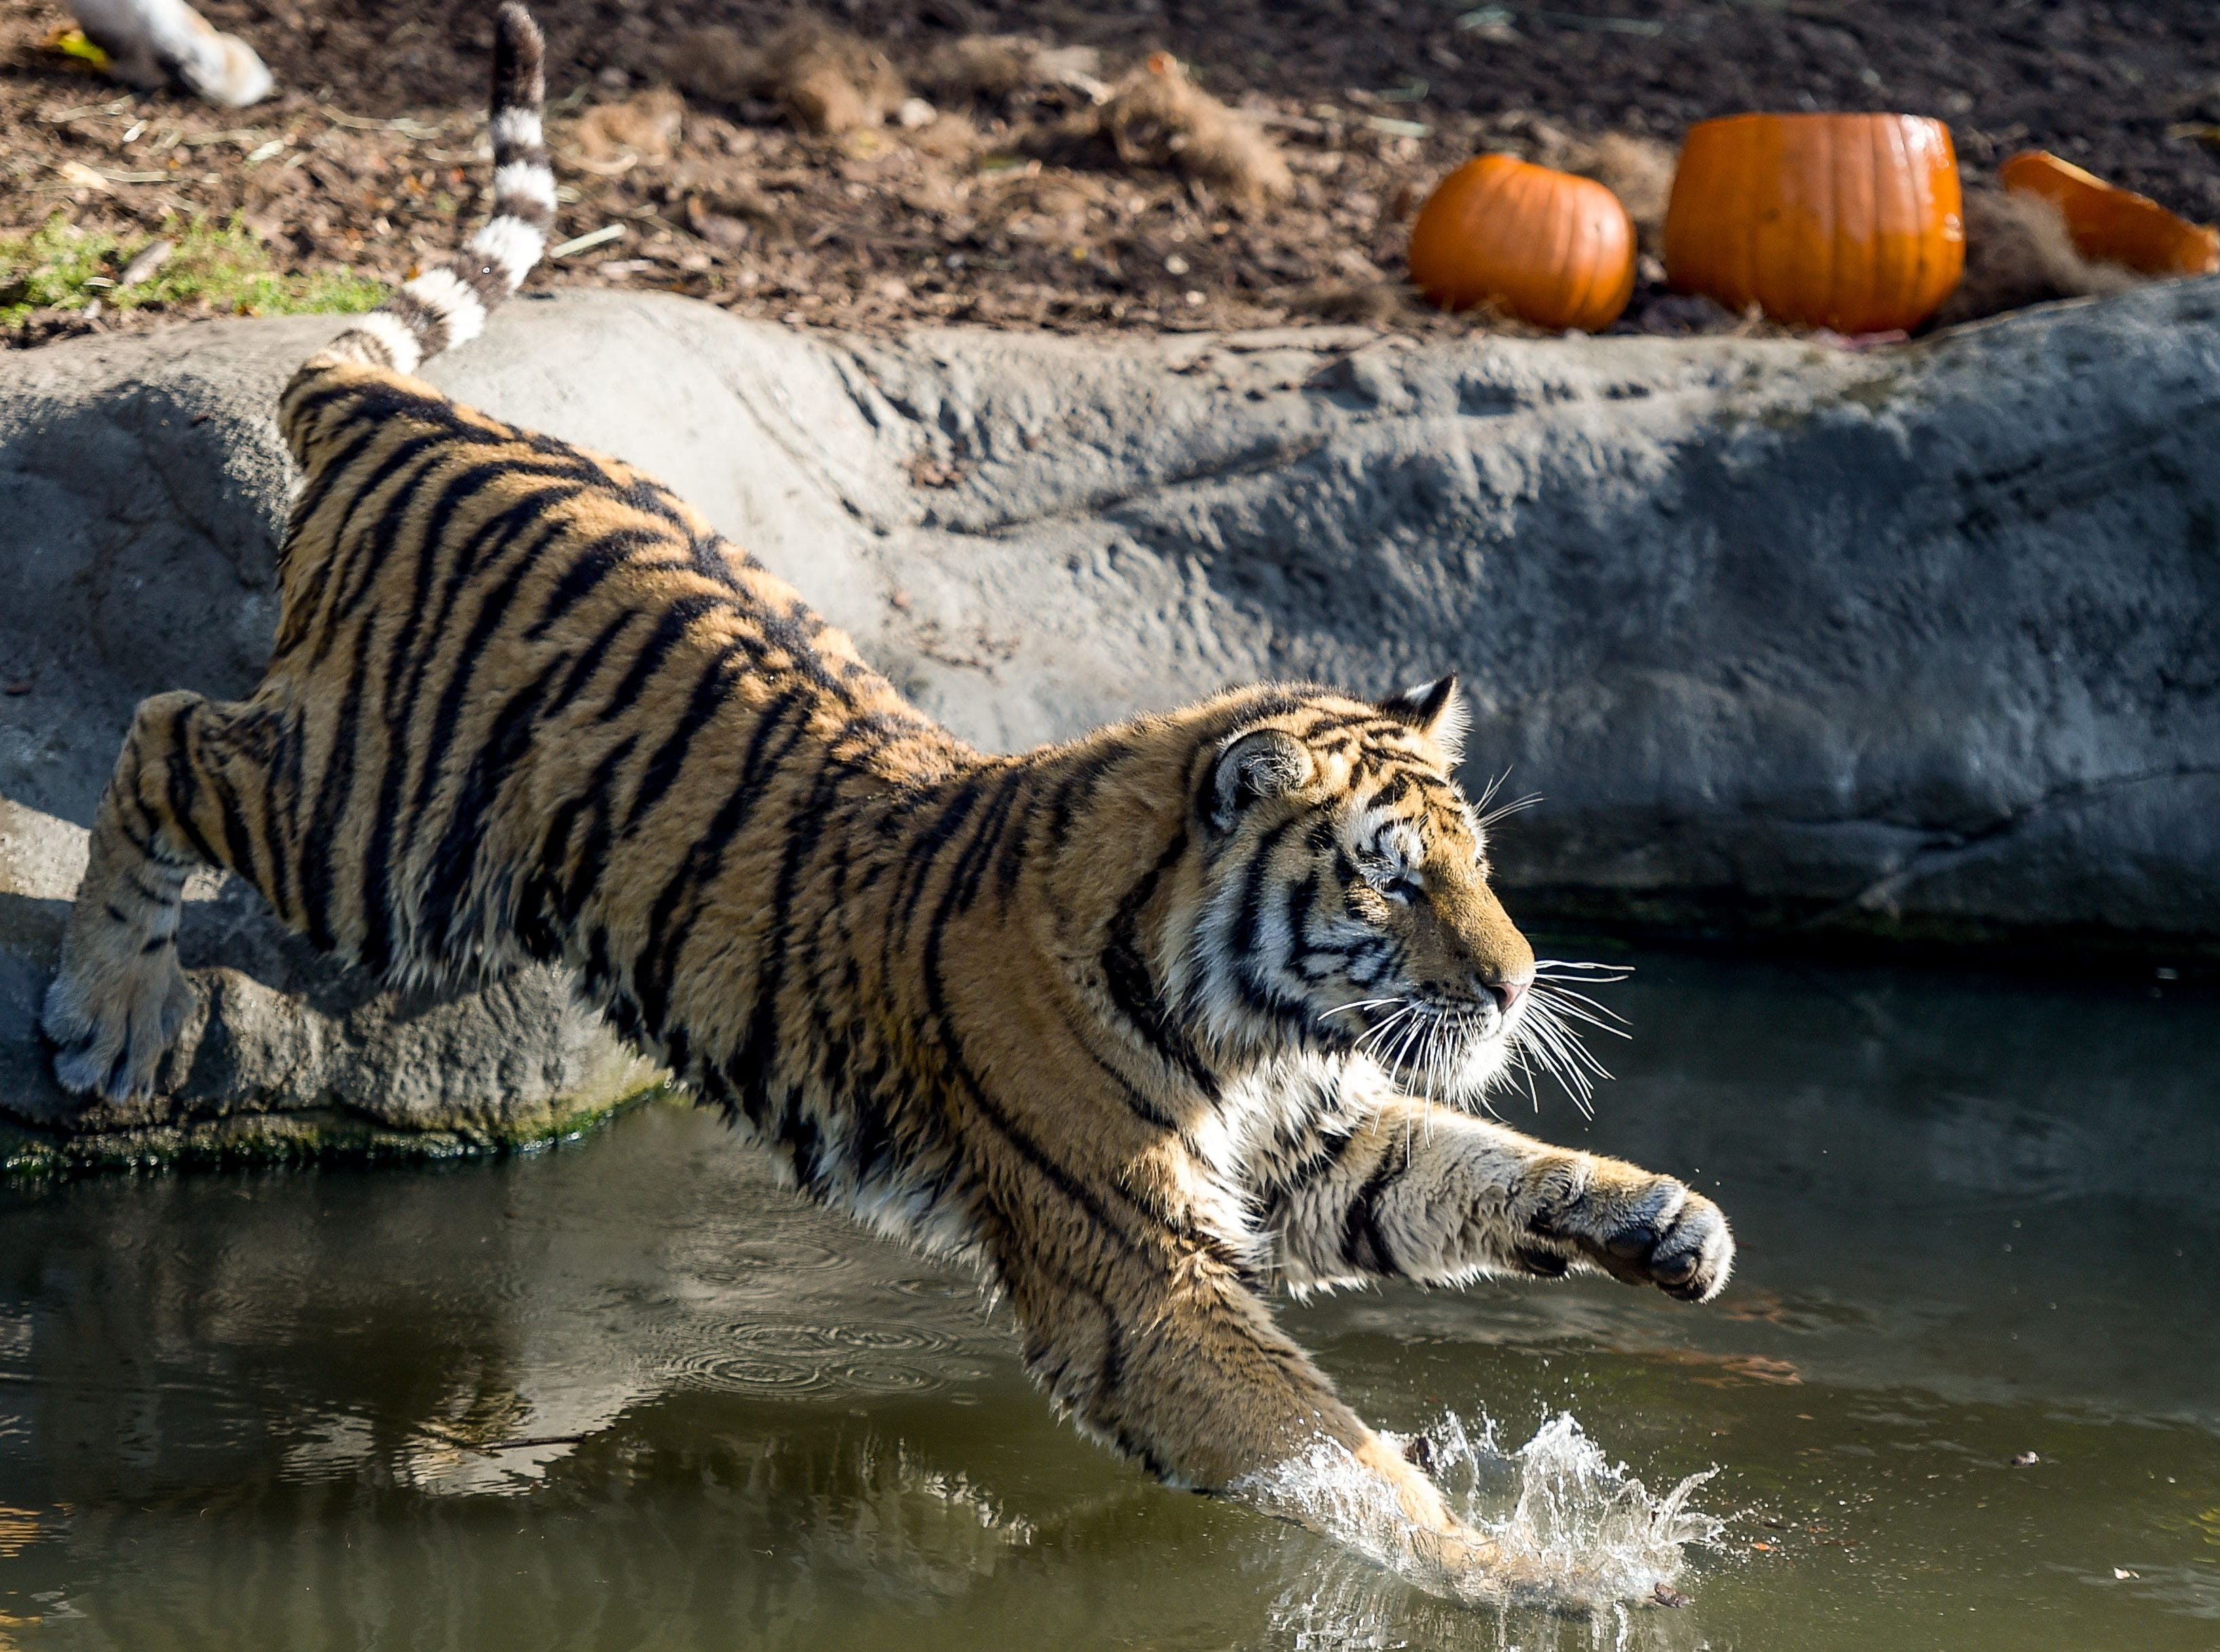 A Siberian tiger jumps in its pool to reach a pumpkin filled with meat on September 27, 2018 at the Tierpark Hagenbeck zoo in Hamburg, northern Germany. (Photo by Axel Heimken / dpa / AFP) / Germany OUTAXEL HEIMKEN/AFP/Getty Images ORIG FILE ID: 581774534